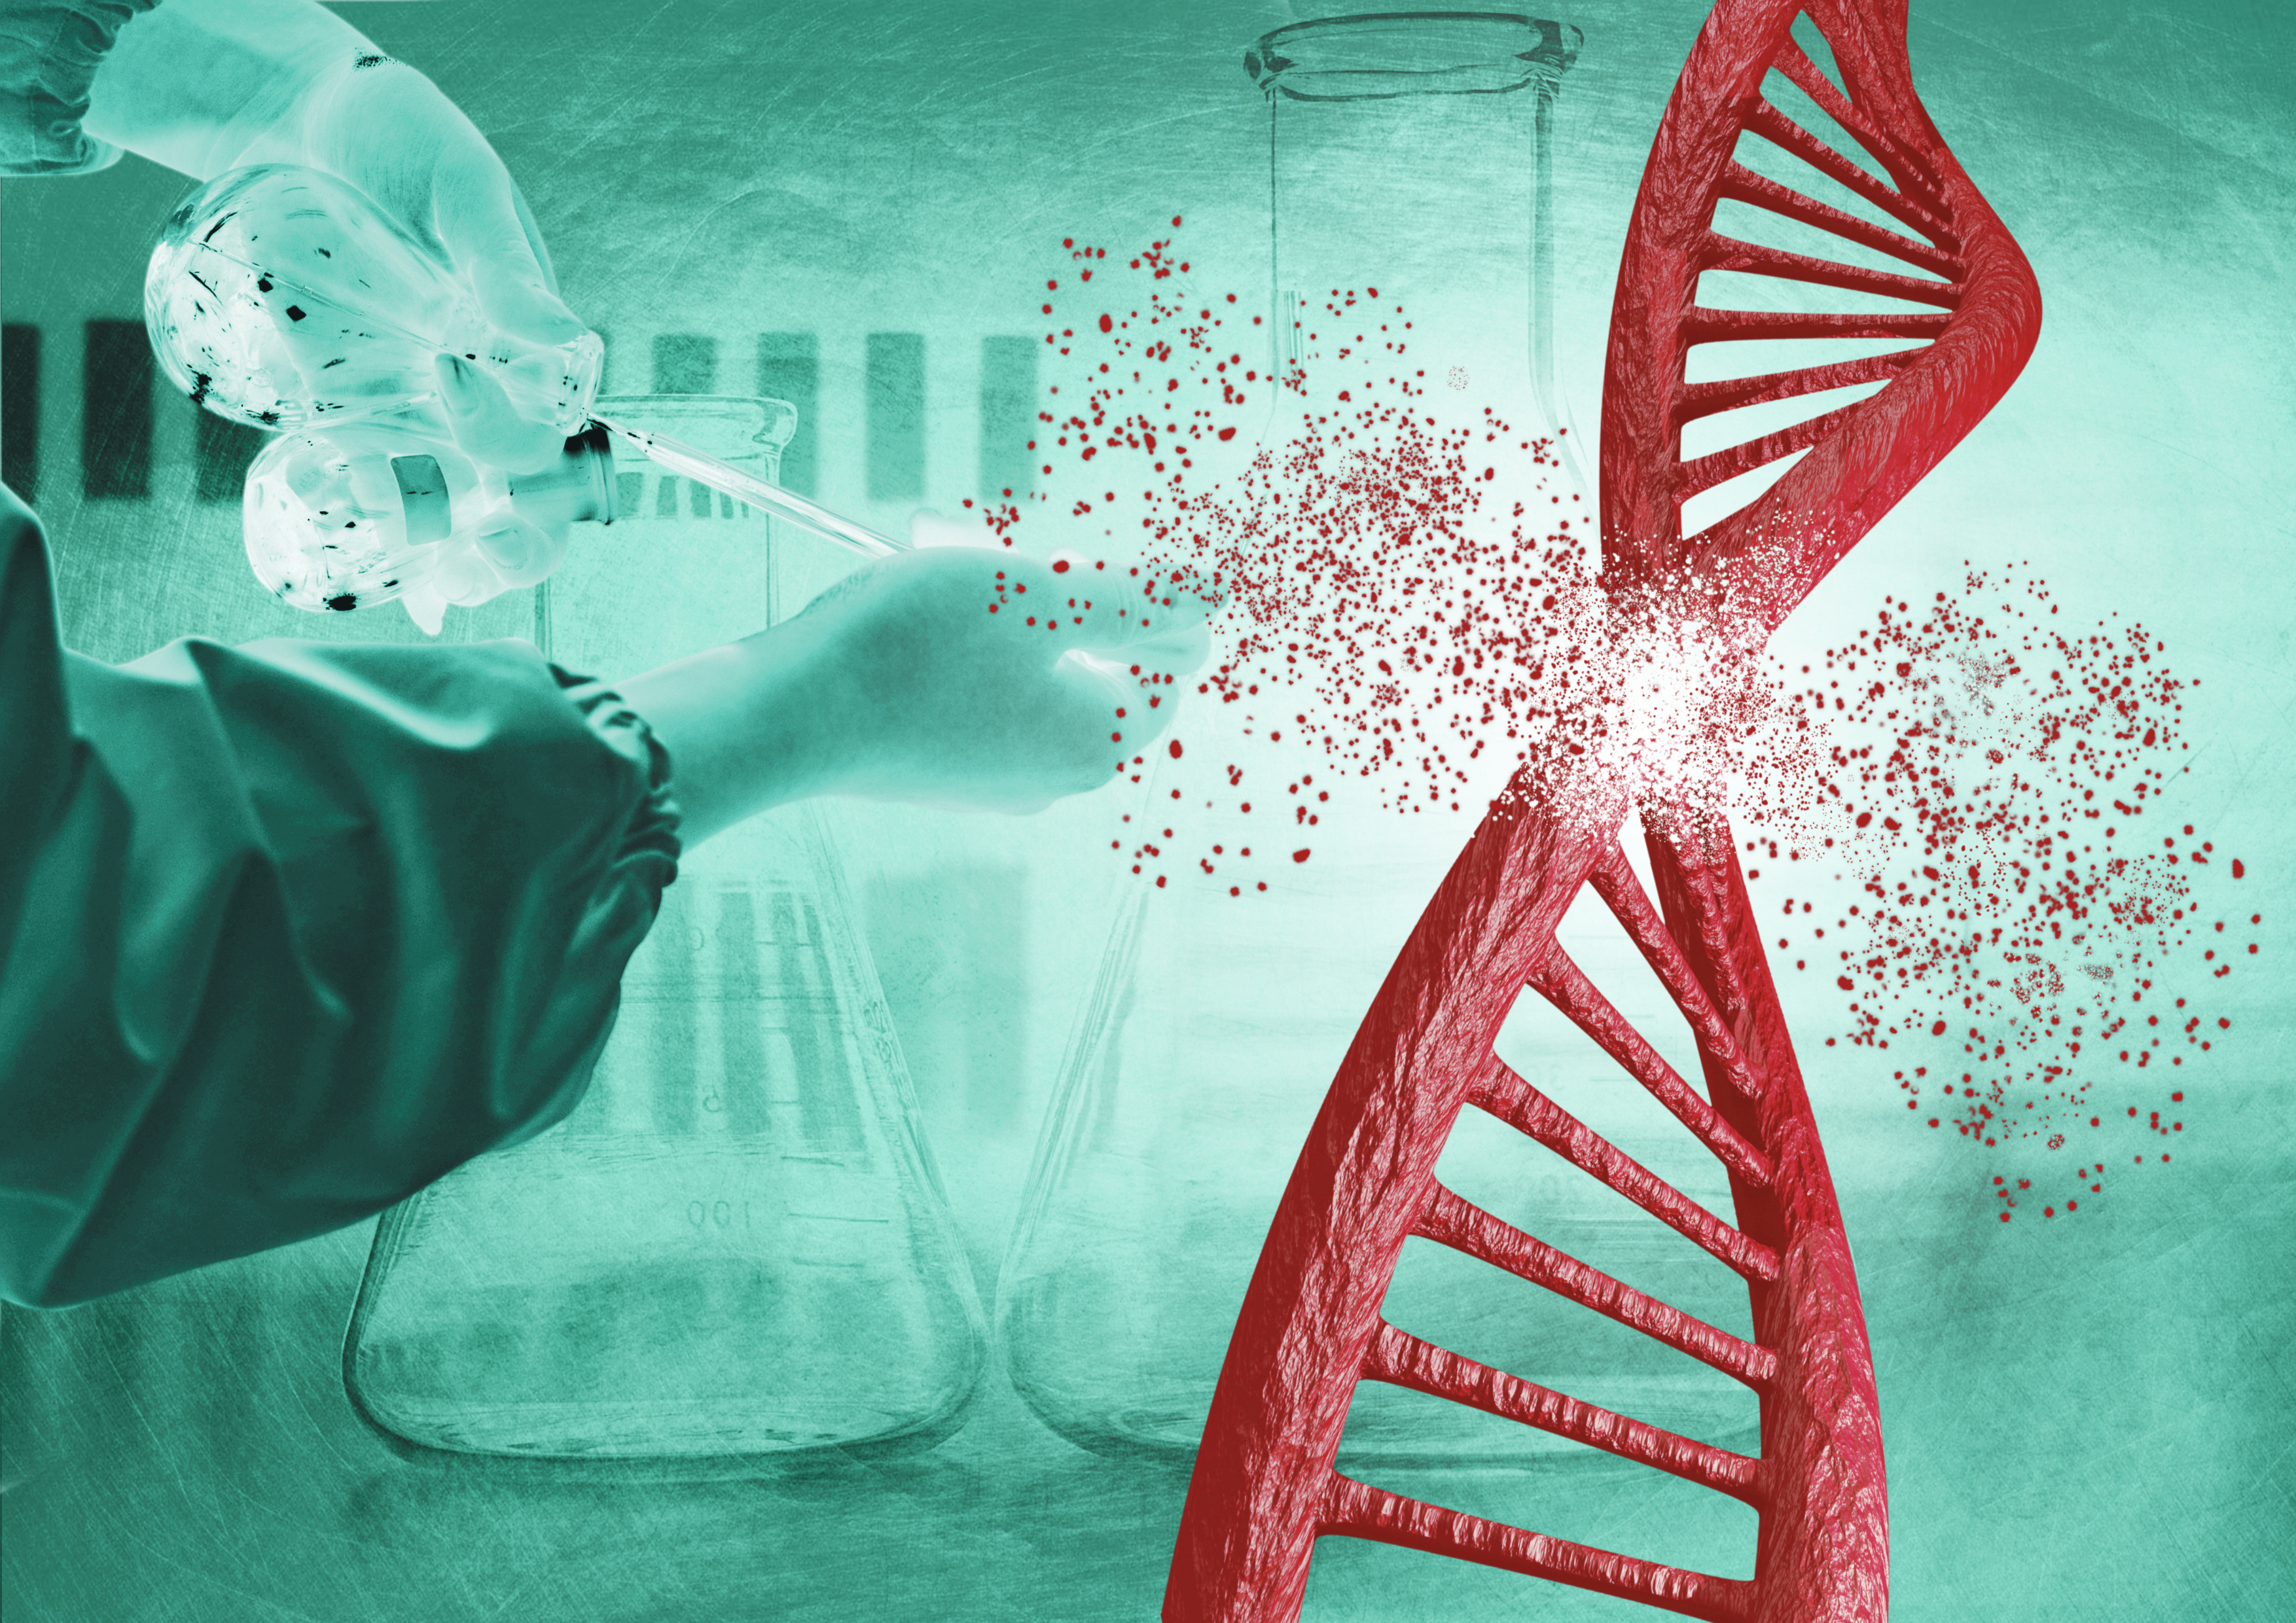 Is it time to regulate biohacking? California thinks so.